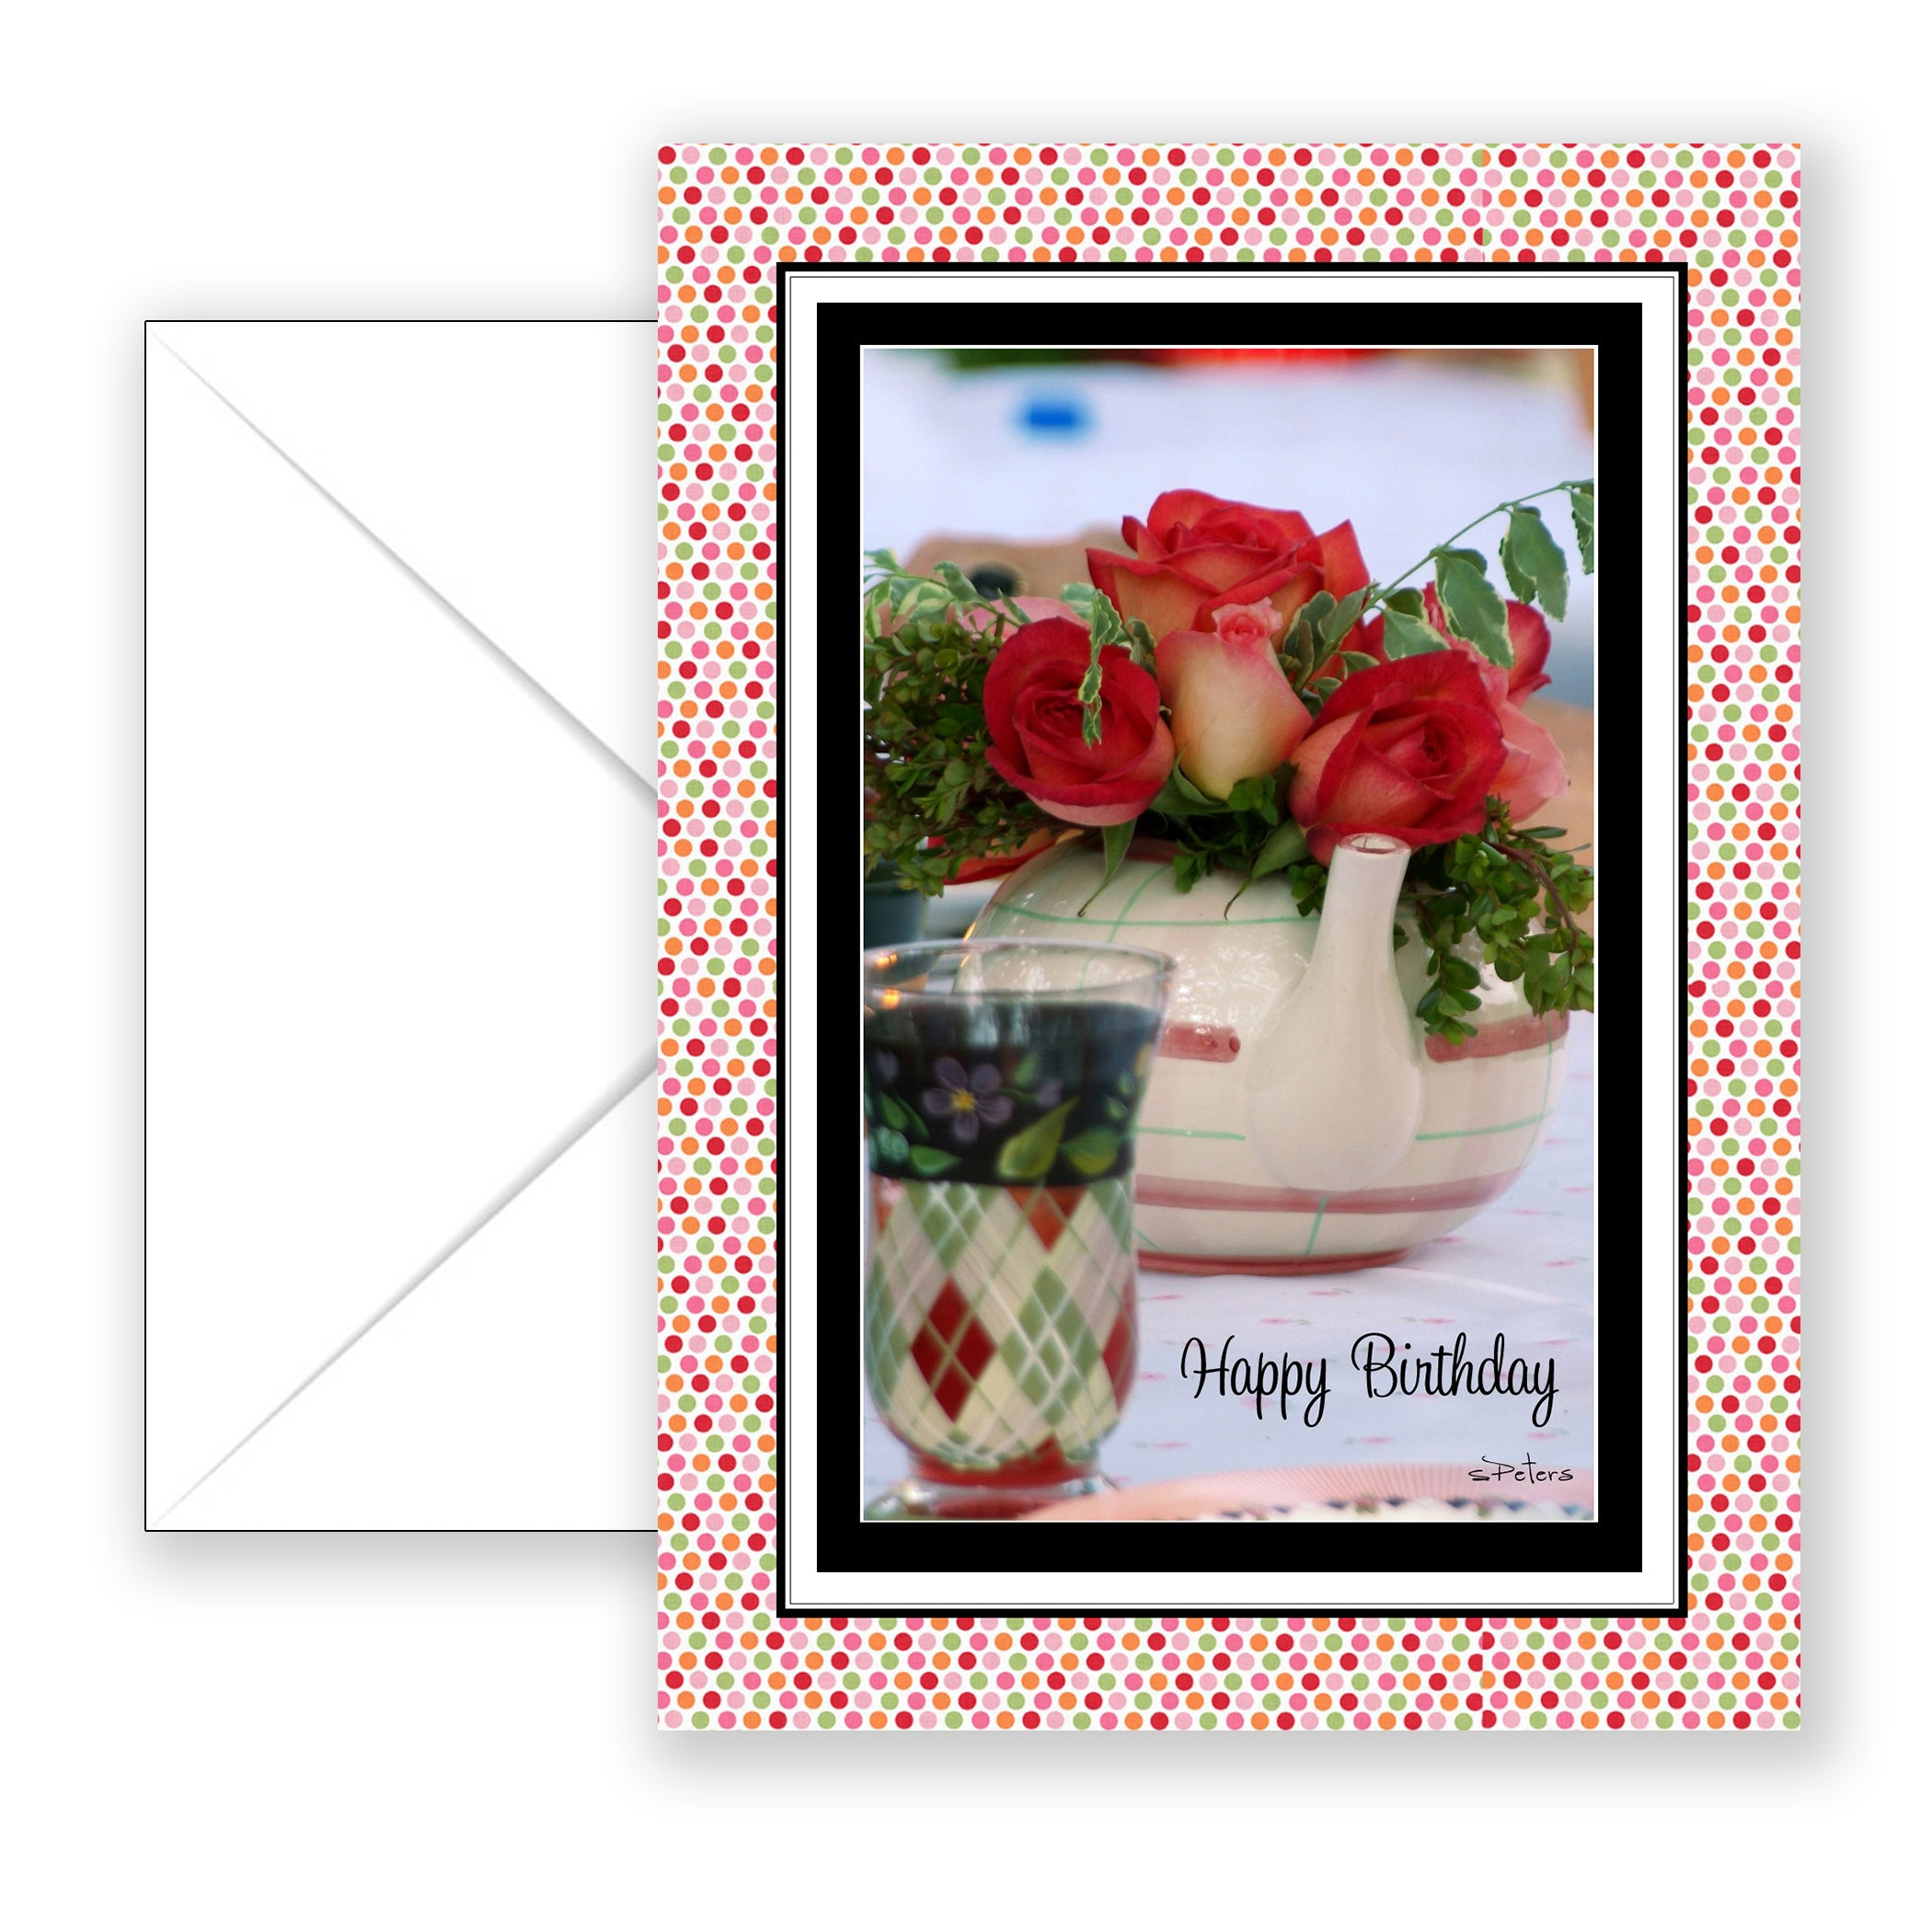 Lunch With You - Birthday Card